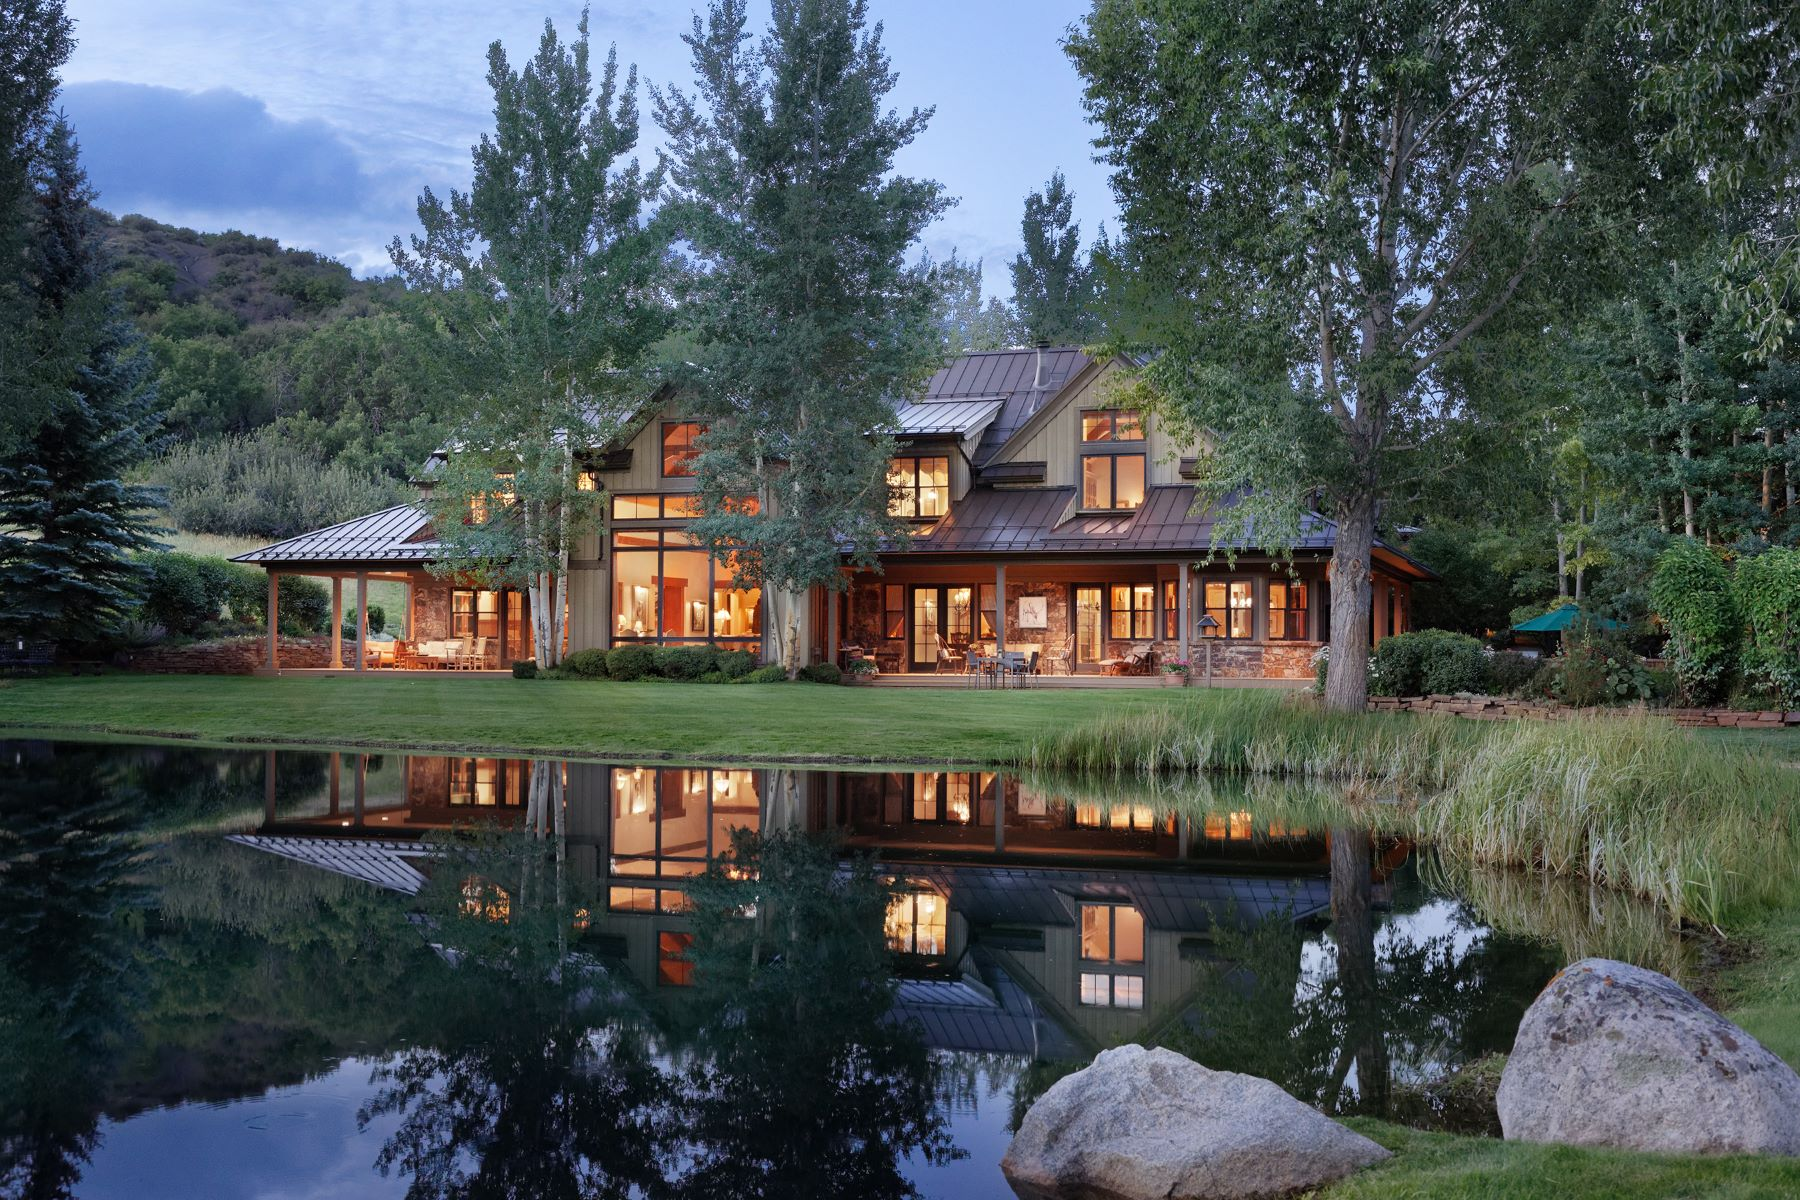 Single Family Home for Active at Owl Creek 1214 Owl Creek Ranch Road Aspen, Colorado 81611 United States